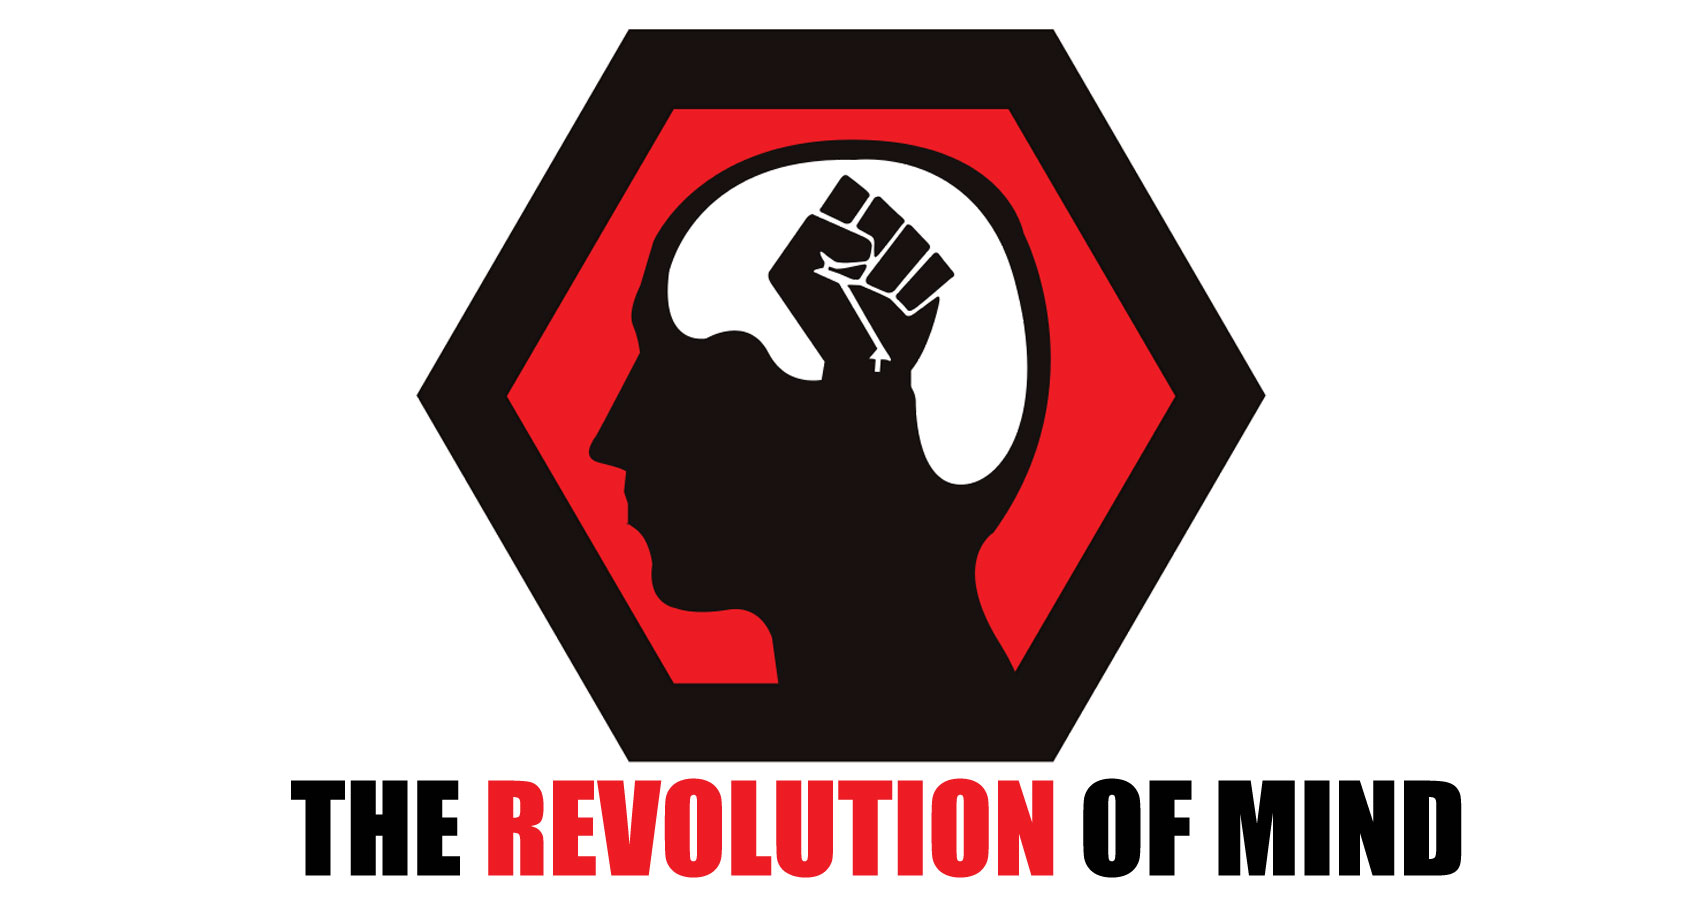 The Revolution of Mind by Dirk Sandarupa at Spillwords.com